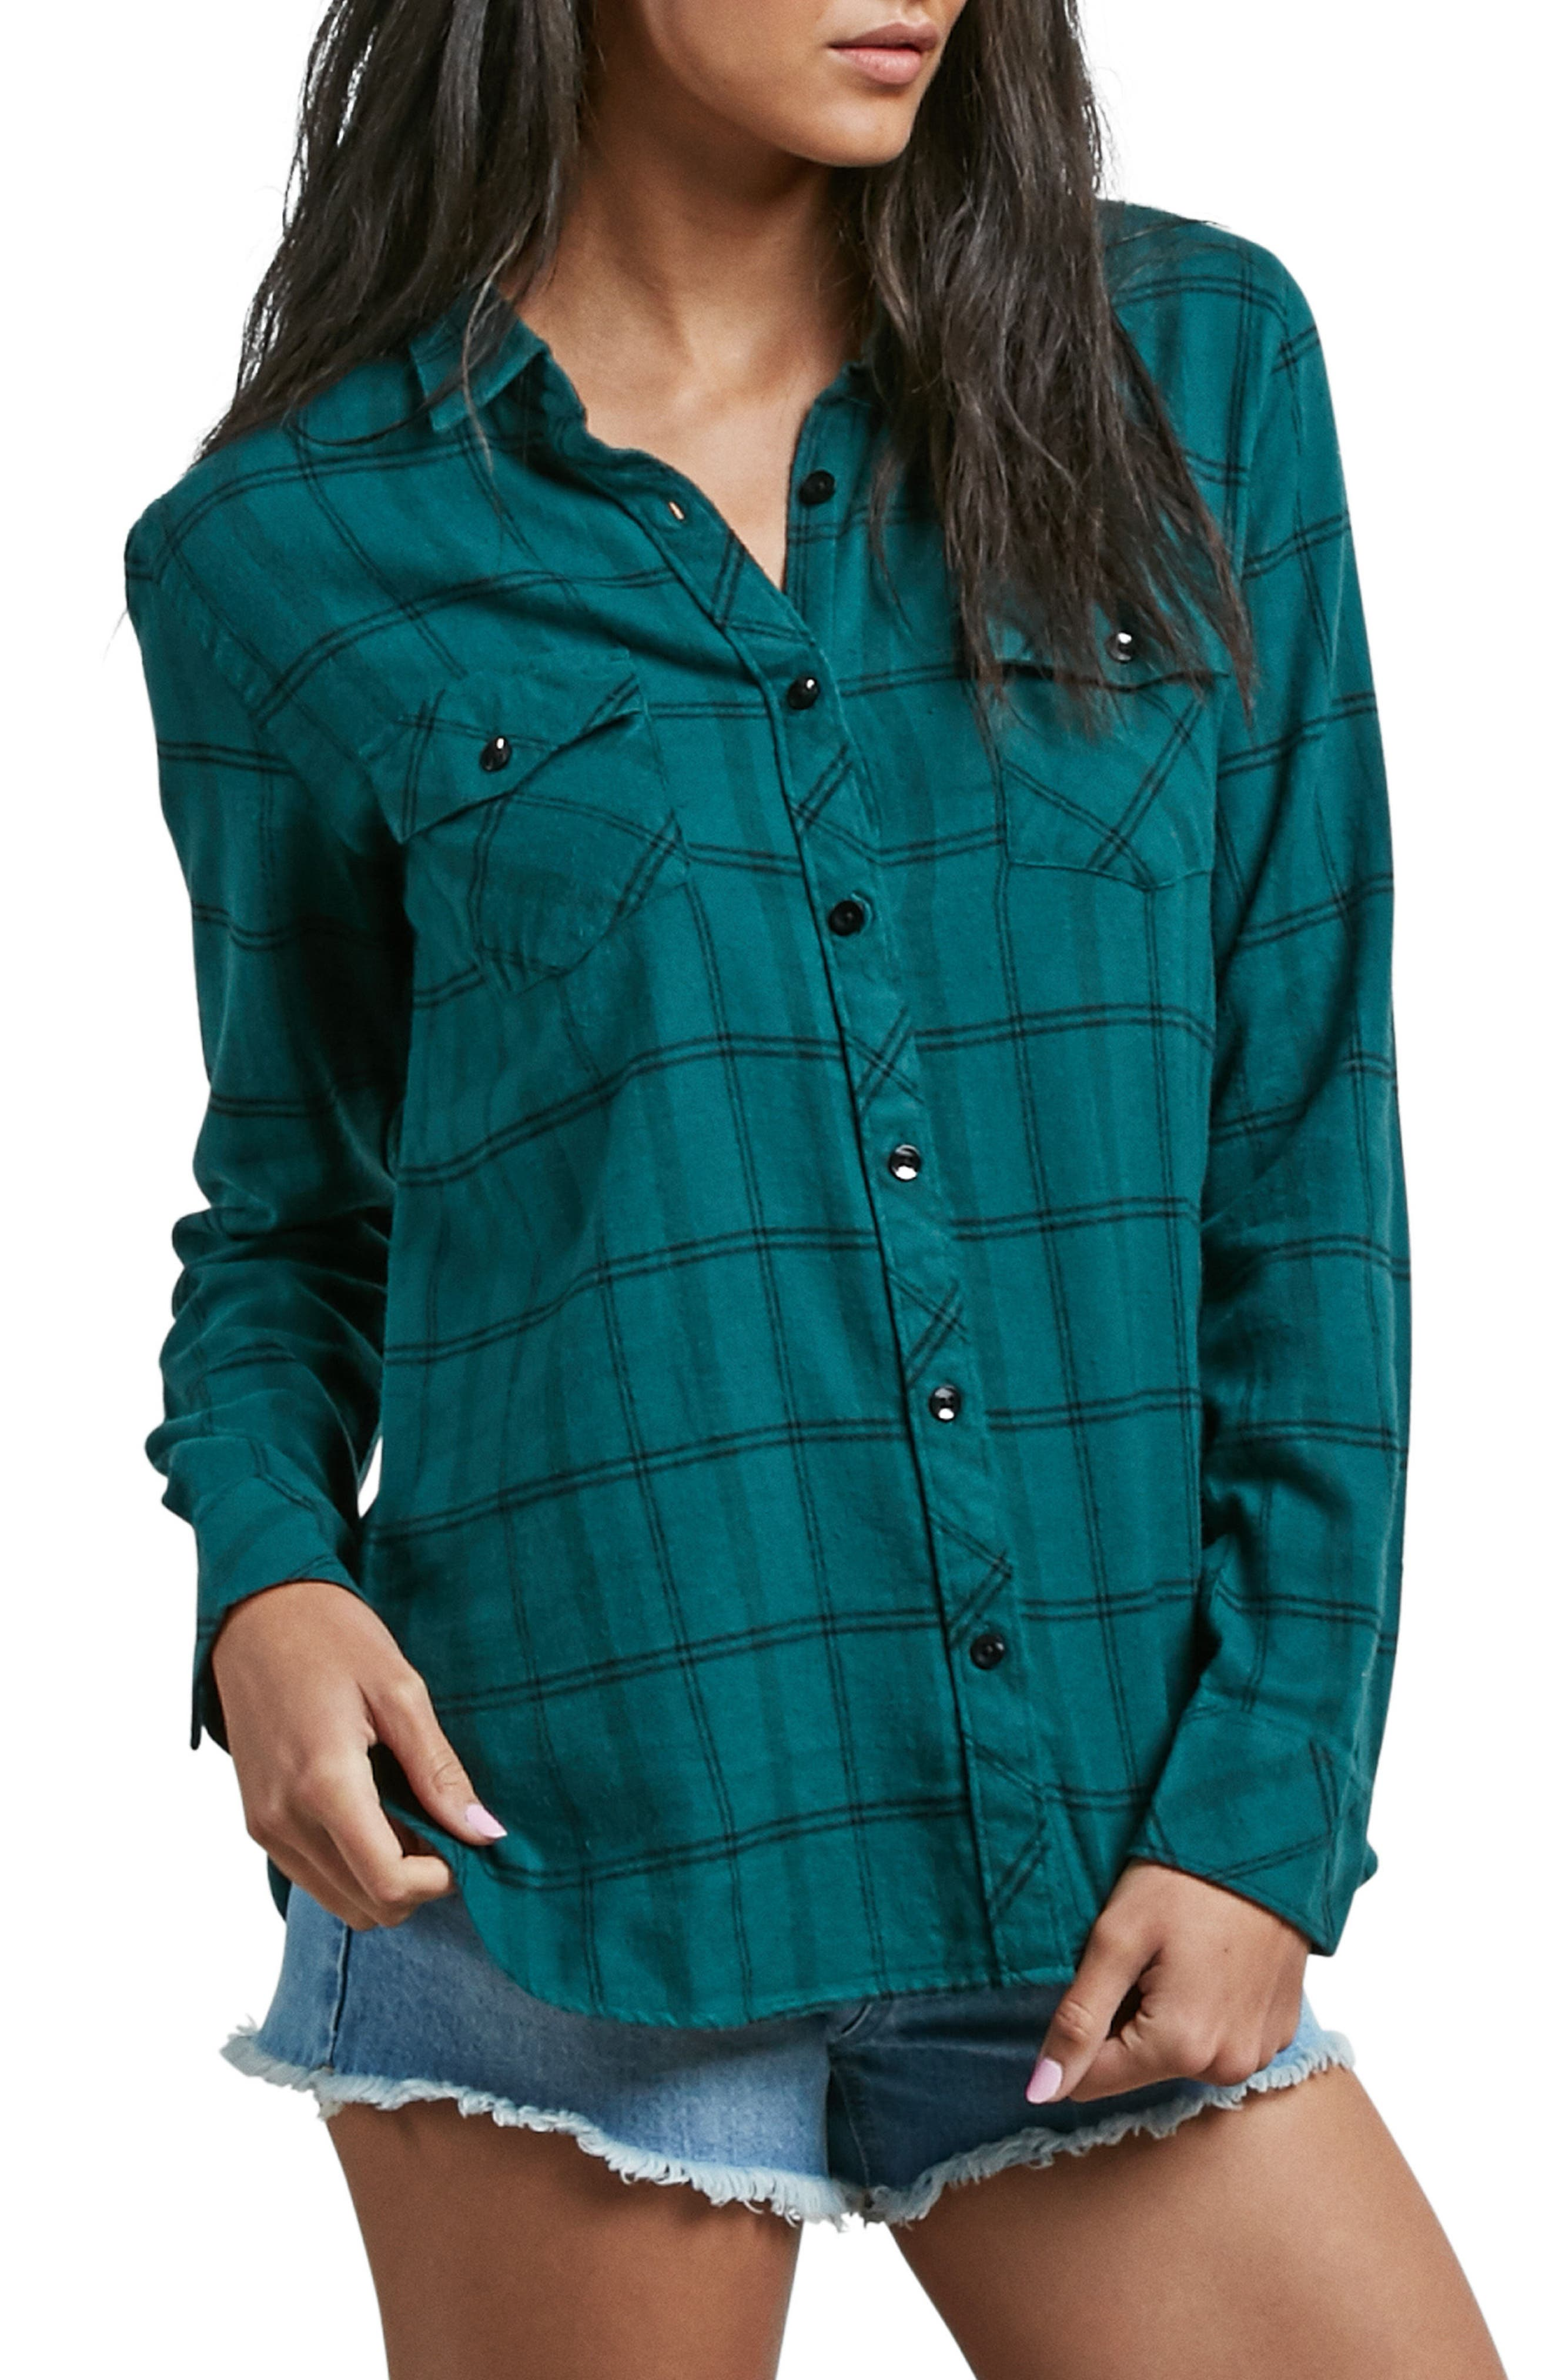 Street Dreaming Plaid Cotton Shirt,                         Main,                         color, Green Mild